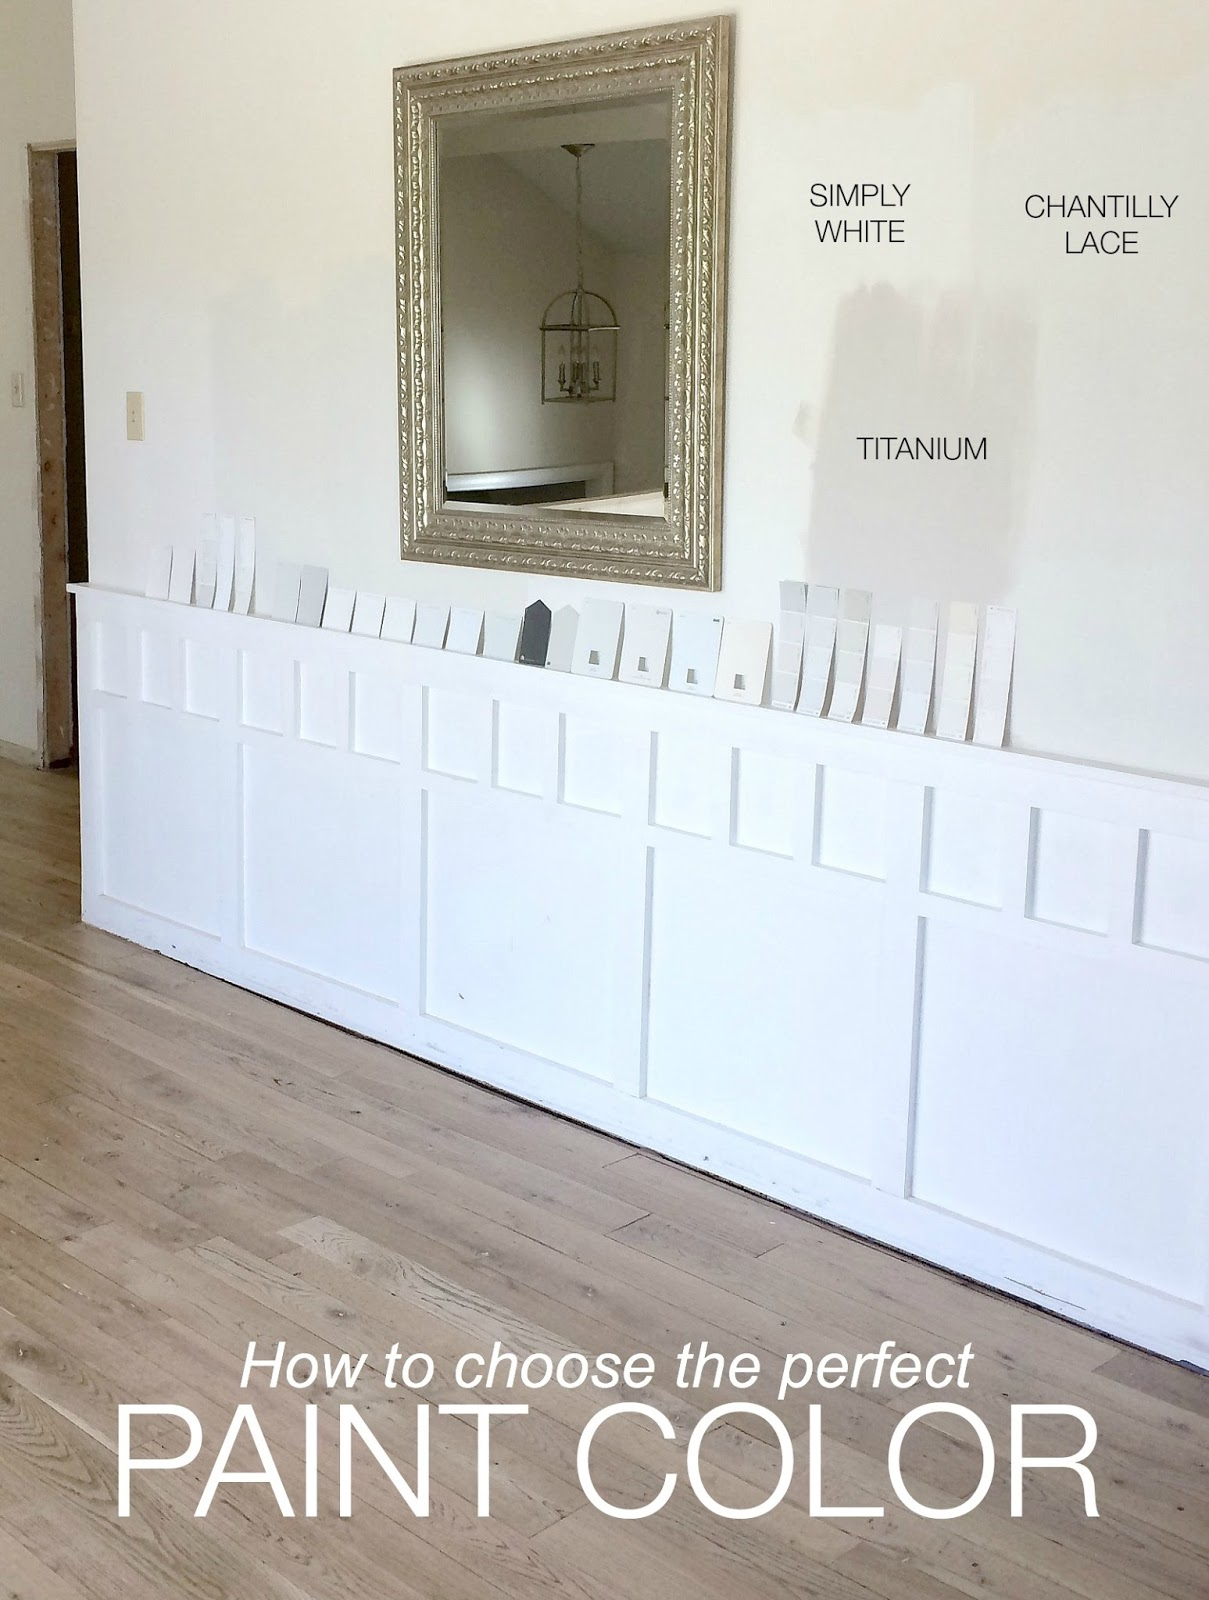 How To Choose A Paint Color: 10 Tips To Help You Decide